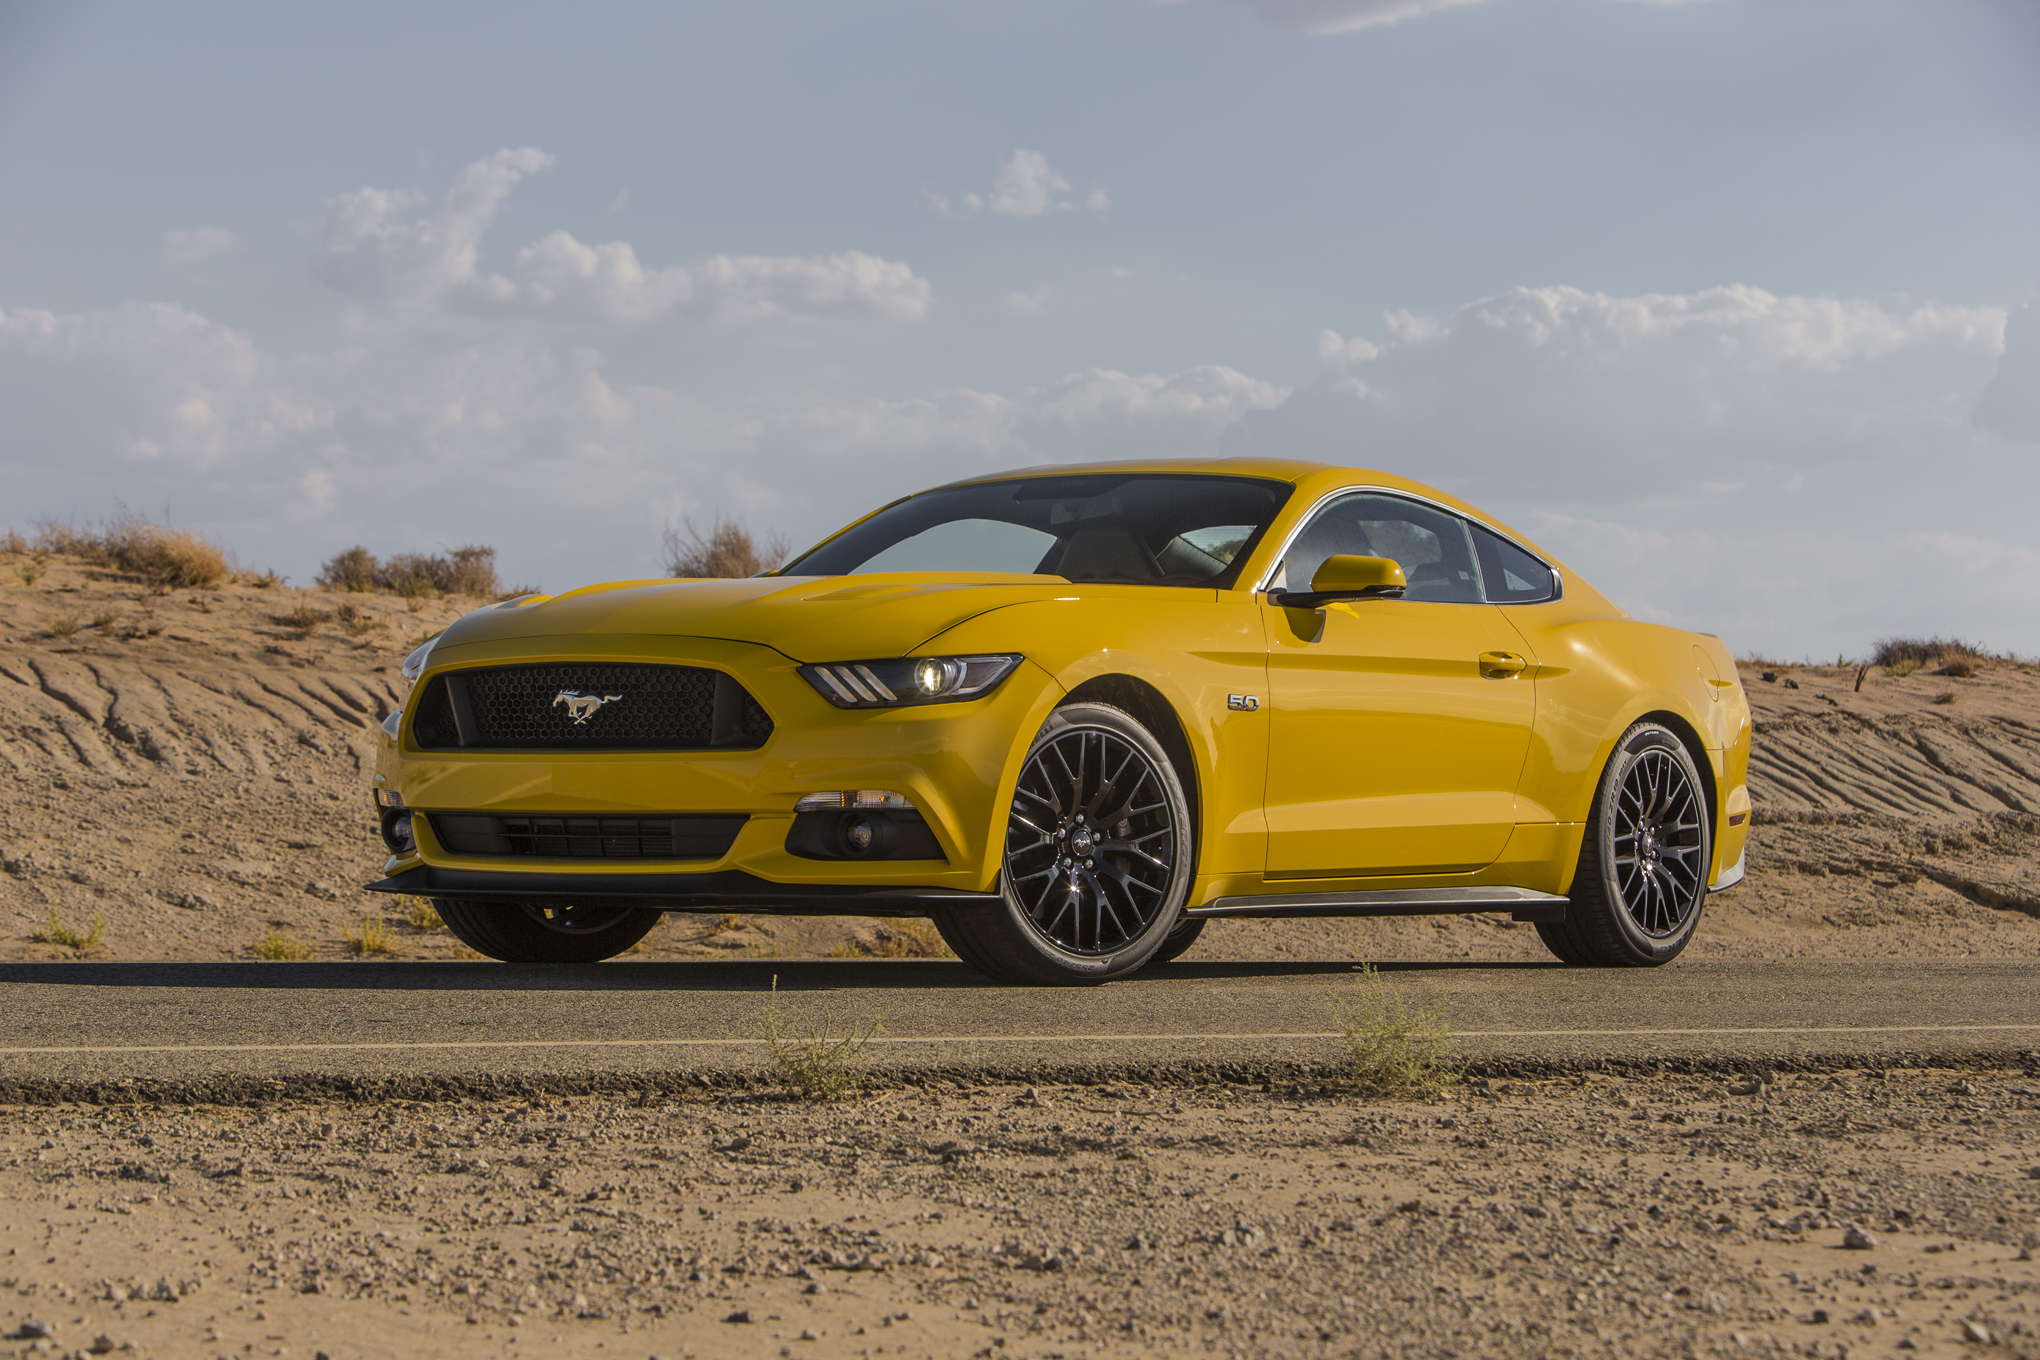 2015 Ford Mustang Gt Exterior (Photo 8 of 30)